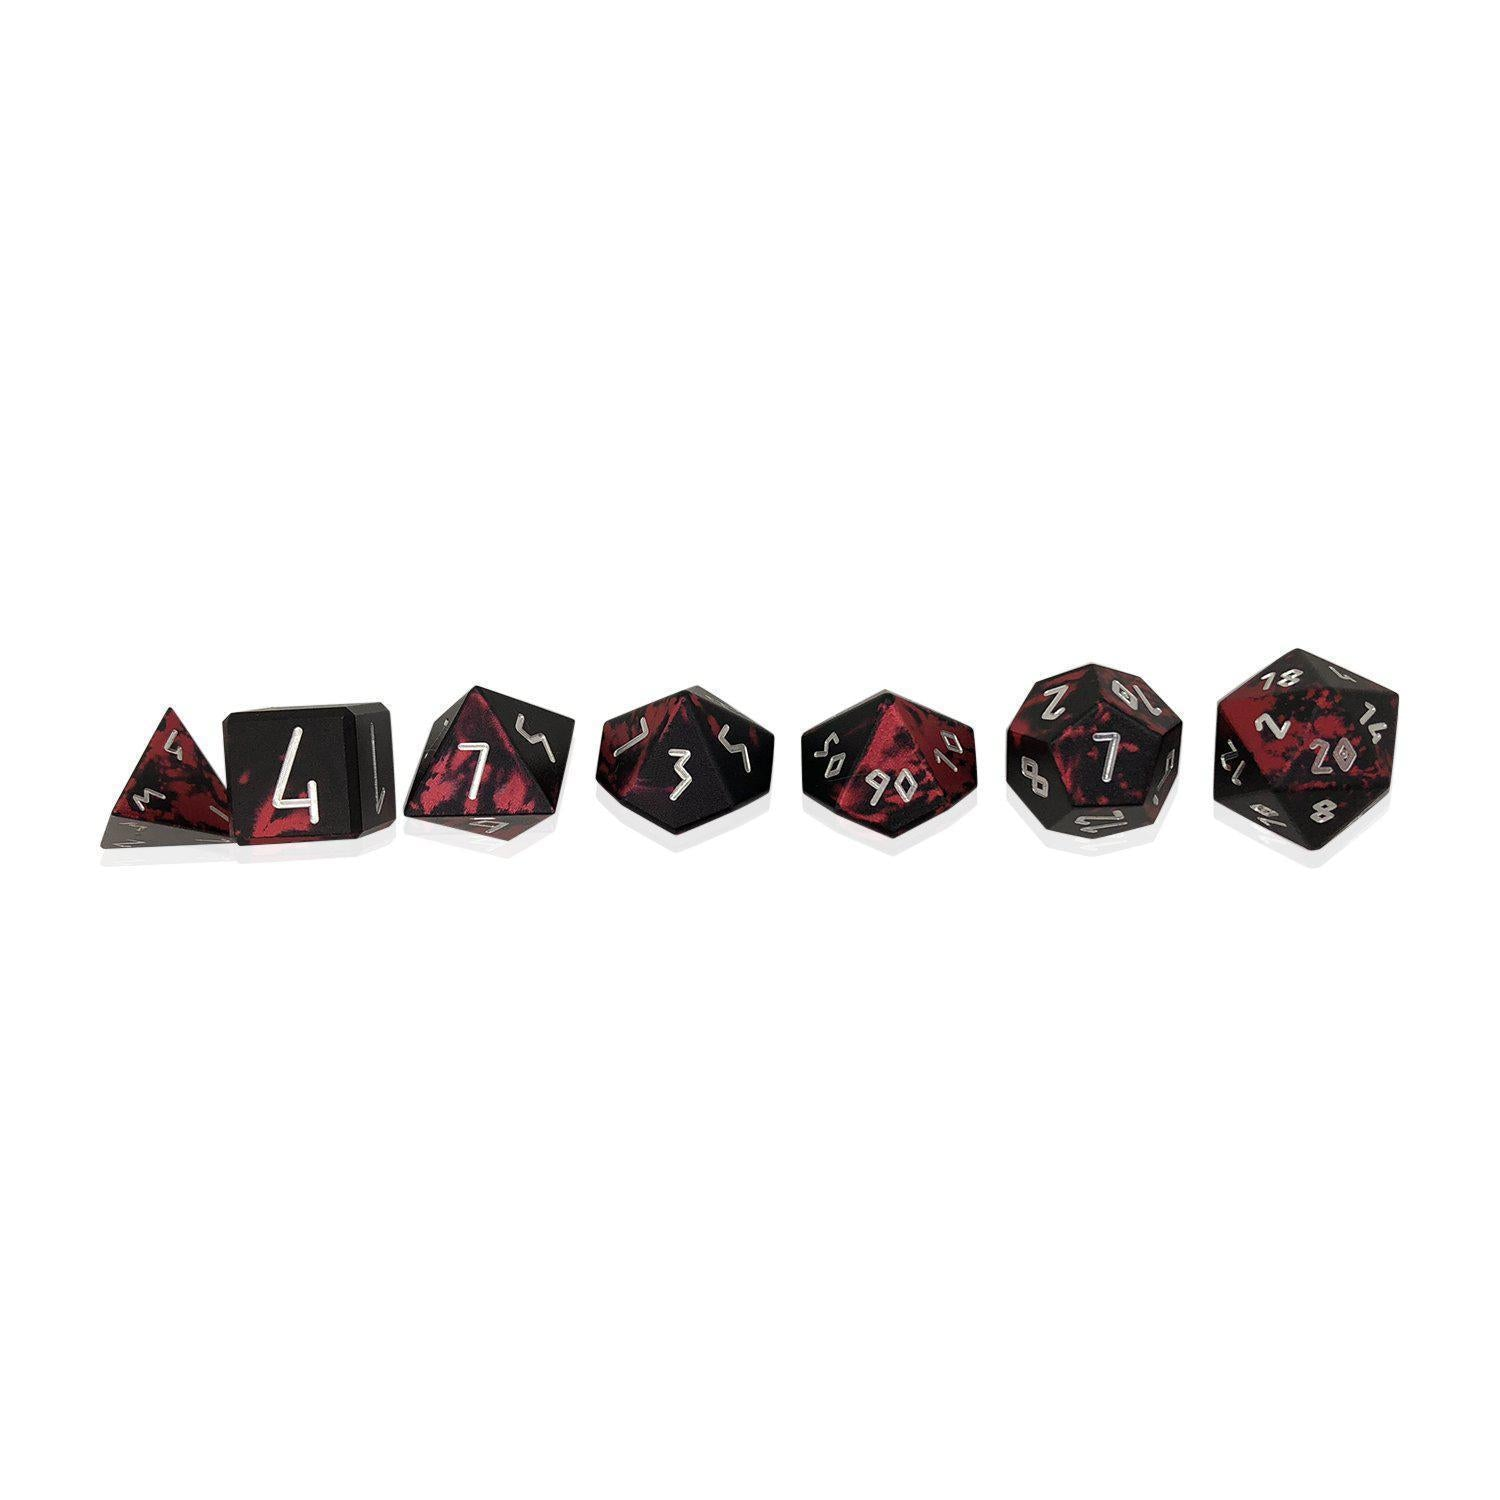 Demon S Blood Wondrous Dice By Norse Foundry D20 Collective Orcs, kobolds, gnomes, goblins or skeletons; norse foundry